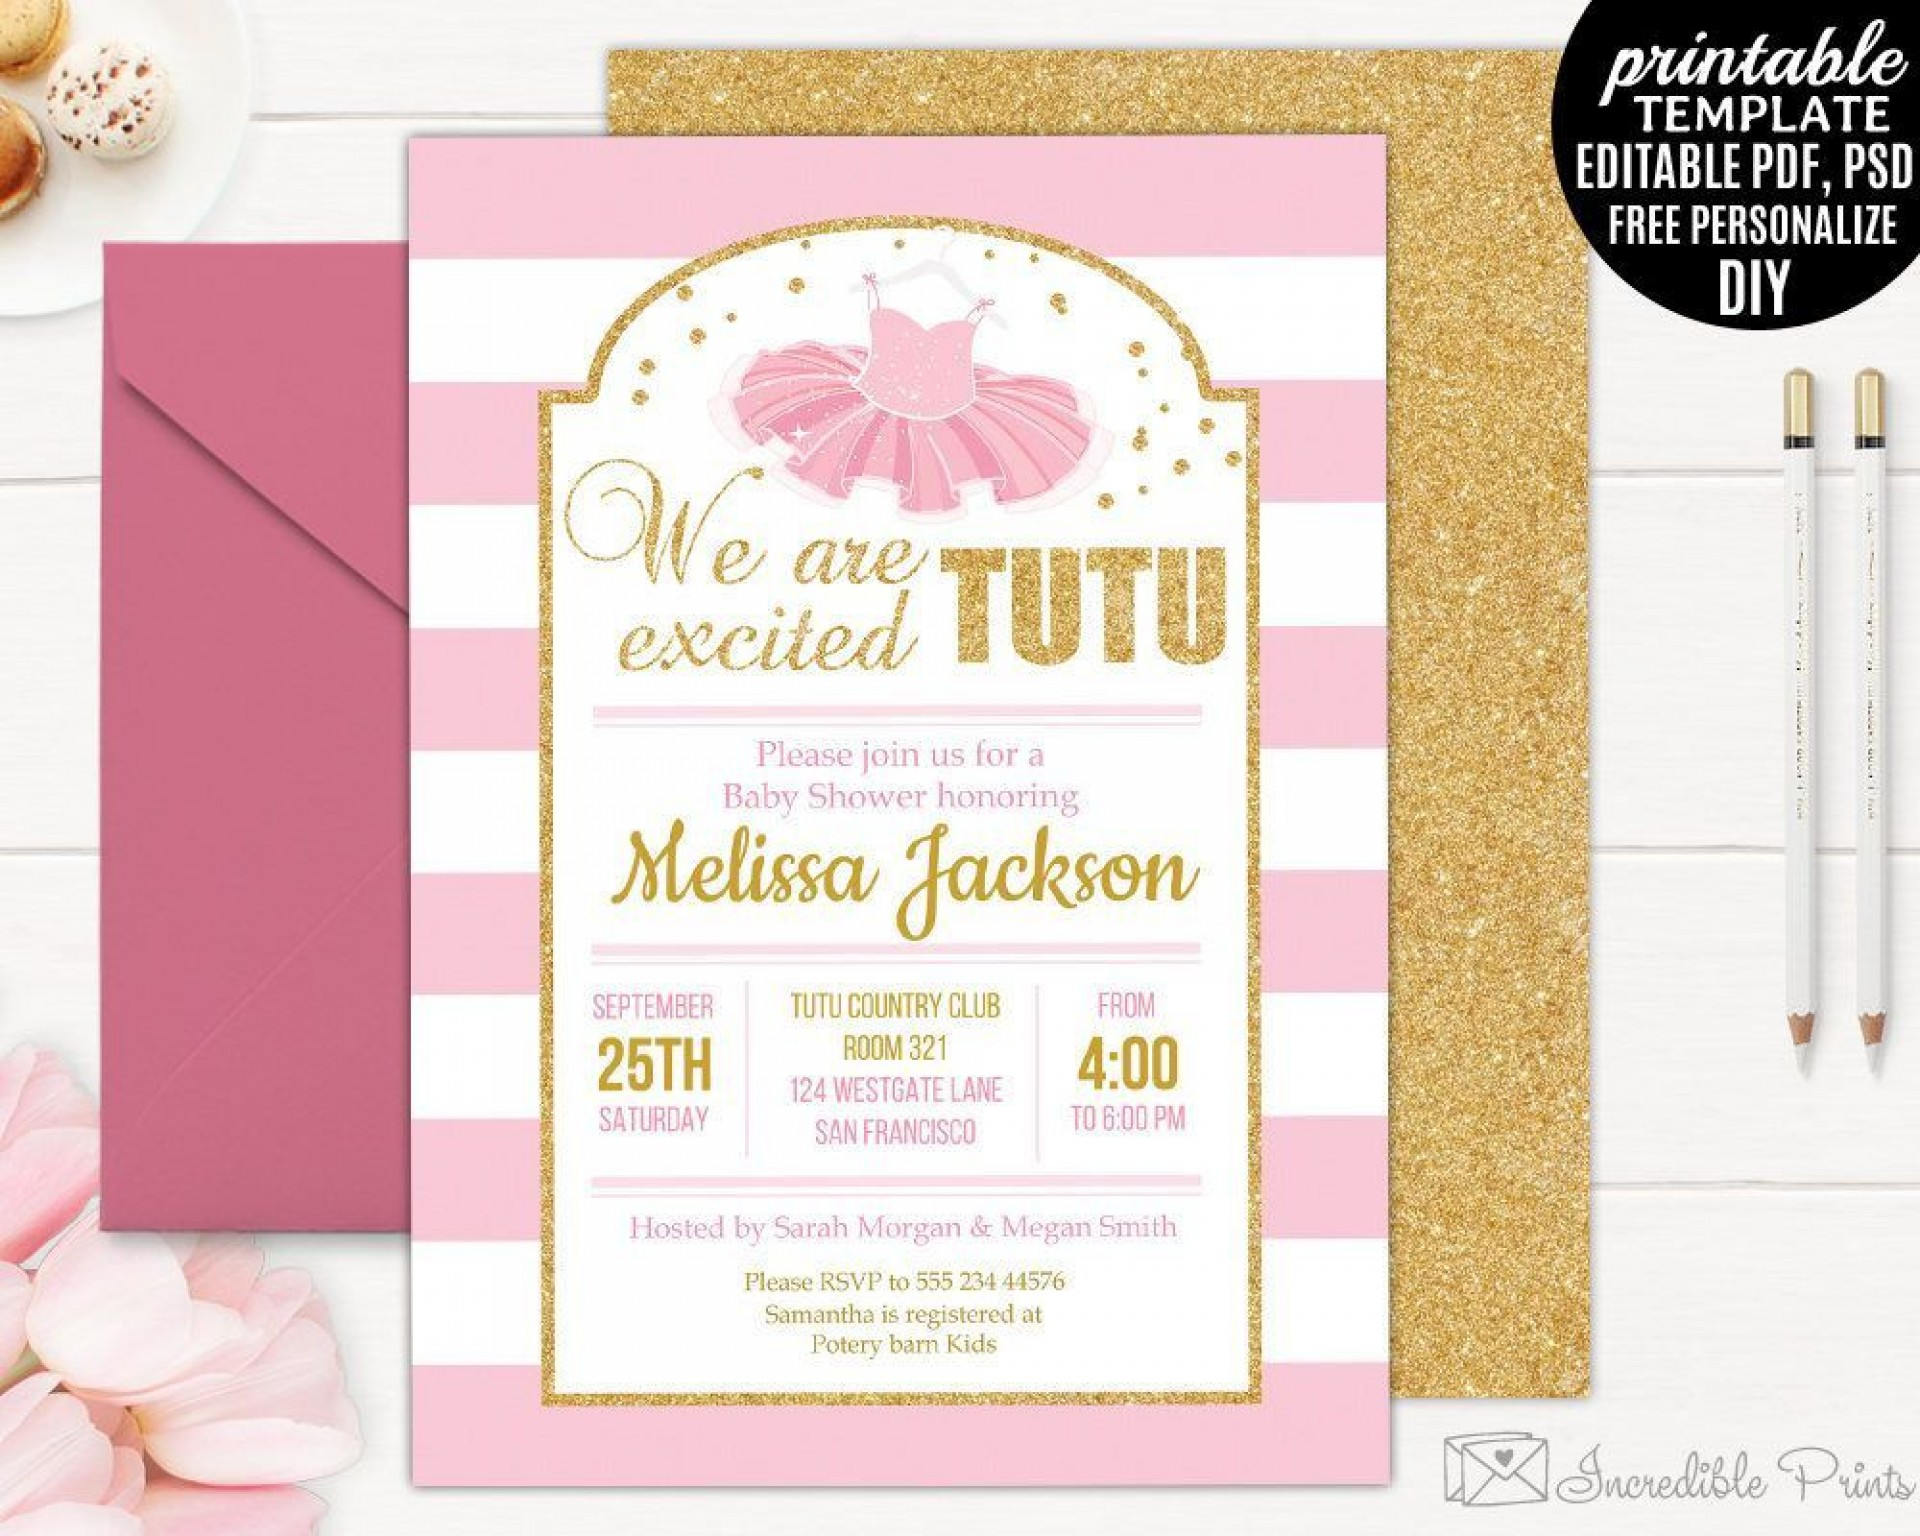 001 Imposing Diy Baby Shower Invitation Template Example  Templates Diaper Free1920